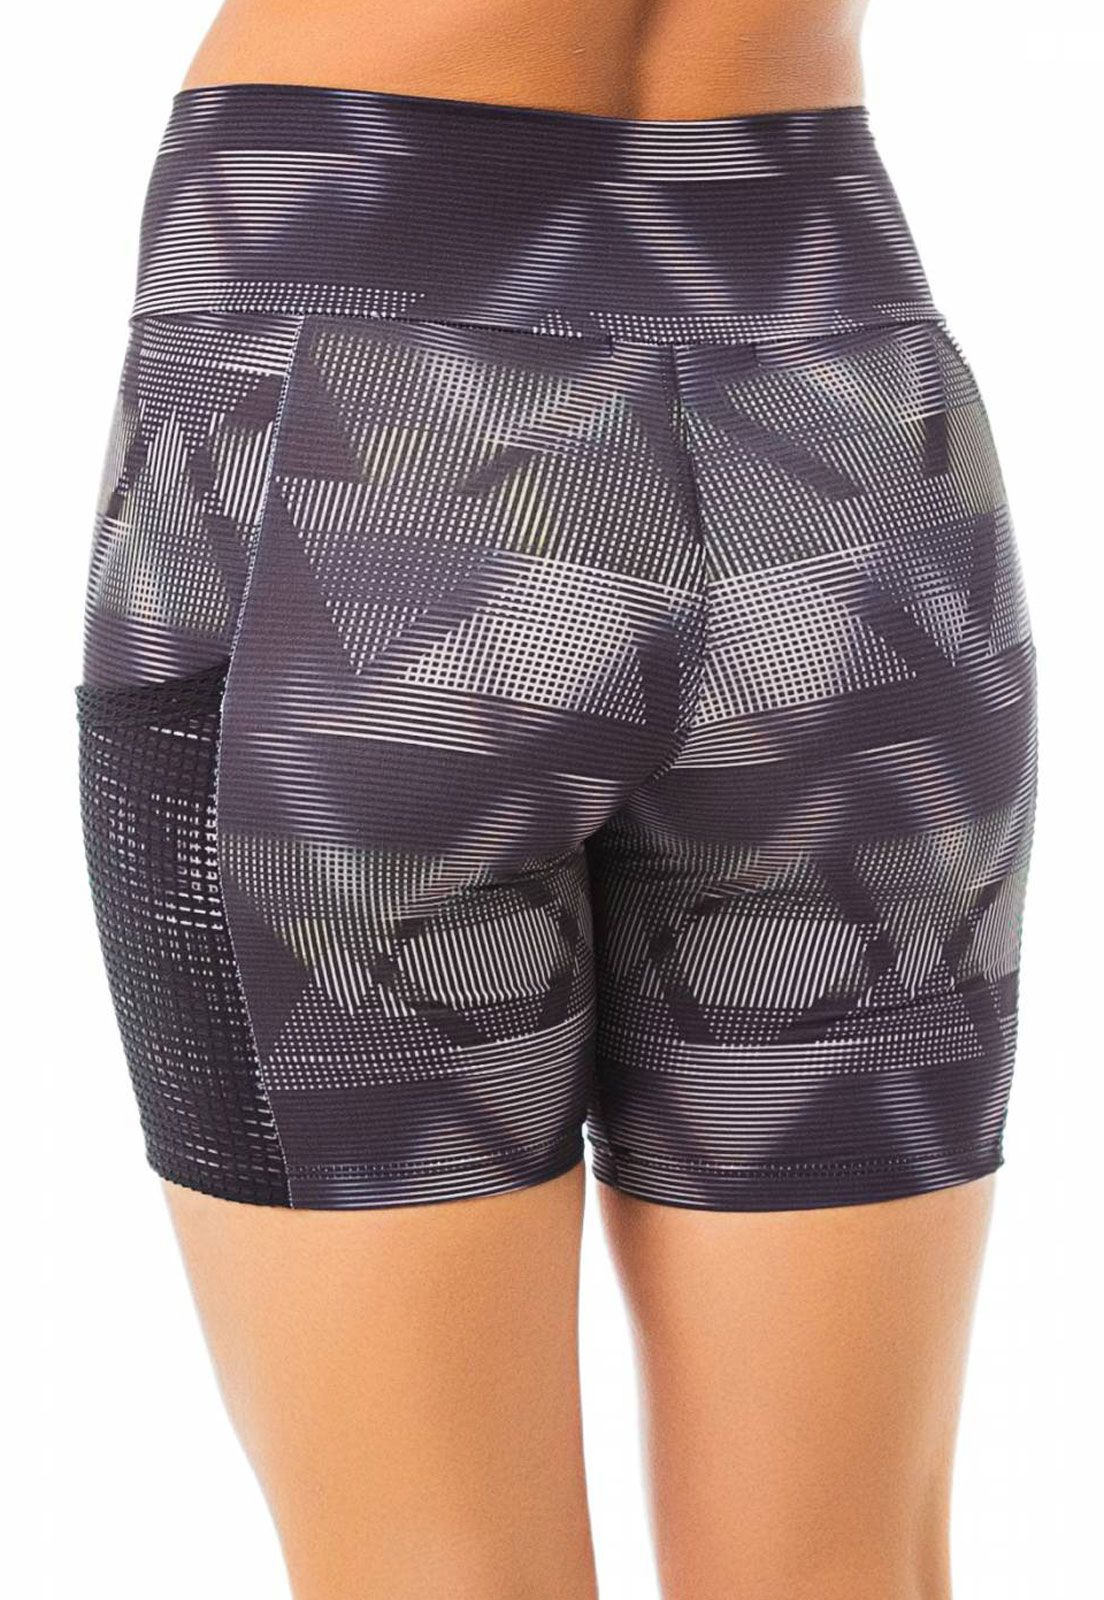 Shorts Fitness Flavia Donadio Beachwear Laguna Preto